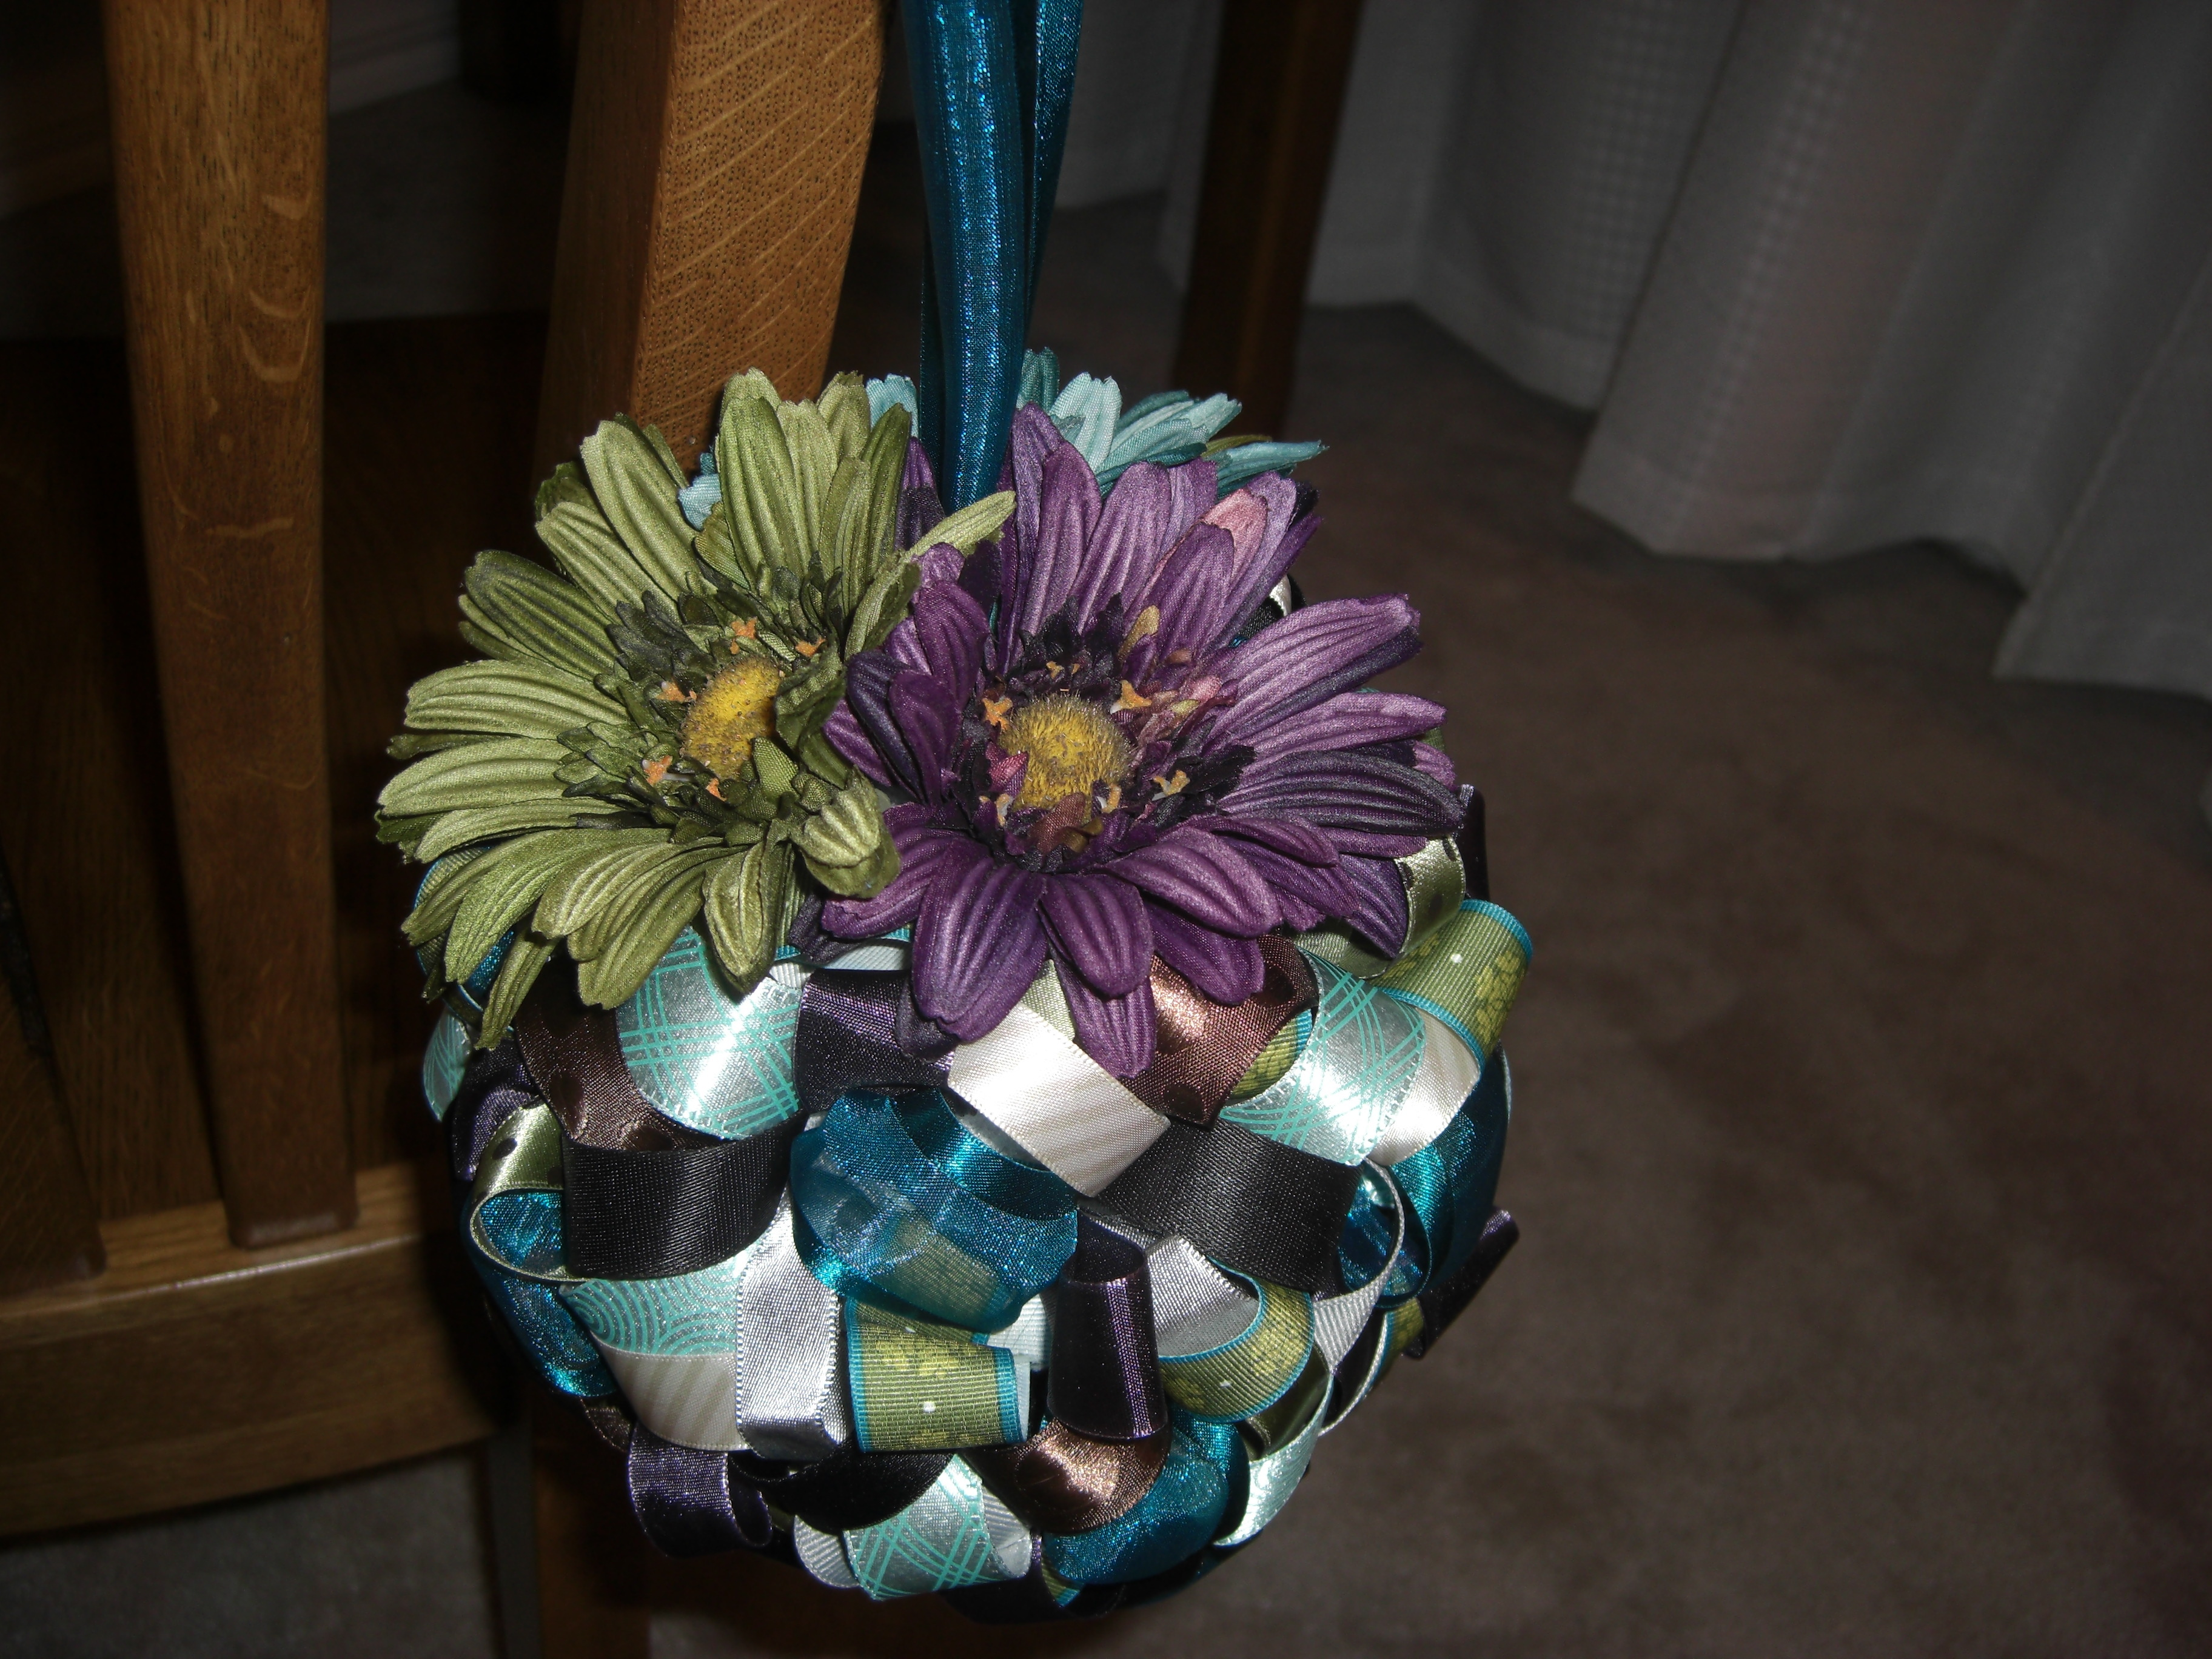 Ceremony, DIY, Reception, Flowers & Decor, purple, blue, green, Ceremony Flowers, Flowers, Ribbon, Decorations, Pomanders